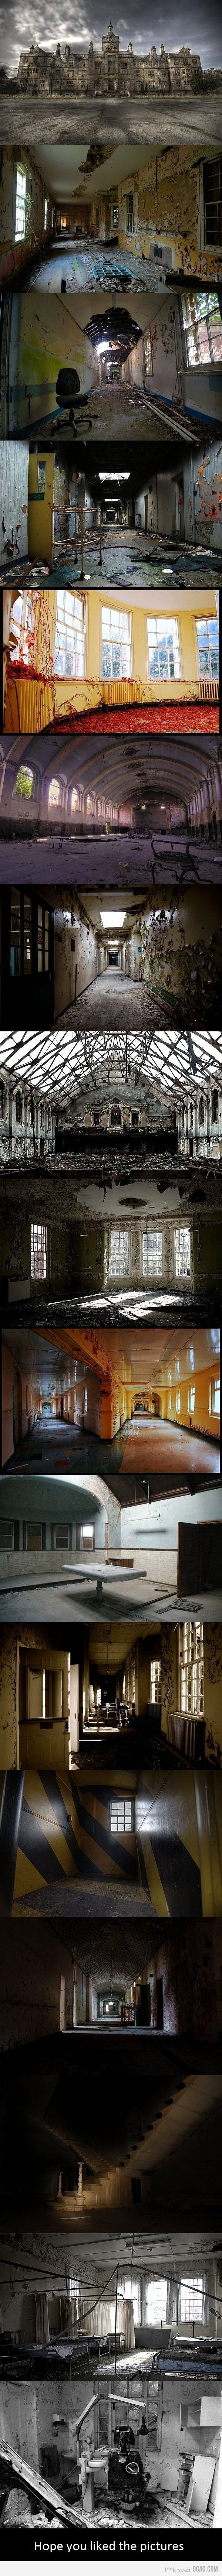 """top one is Denbigh Hospital. The forked corridor and the mortuary is High Royds. The yellow and black striped """"hazard room"""" is an art installation at Deva Asylum. The forked staircase is St John's Hospital Lincoln. The dentist's room is Cane Hill."""